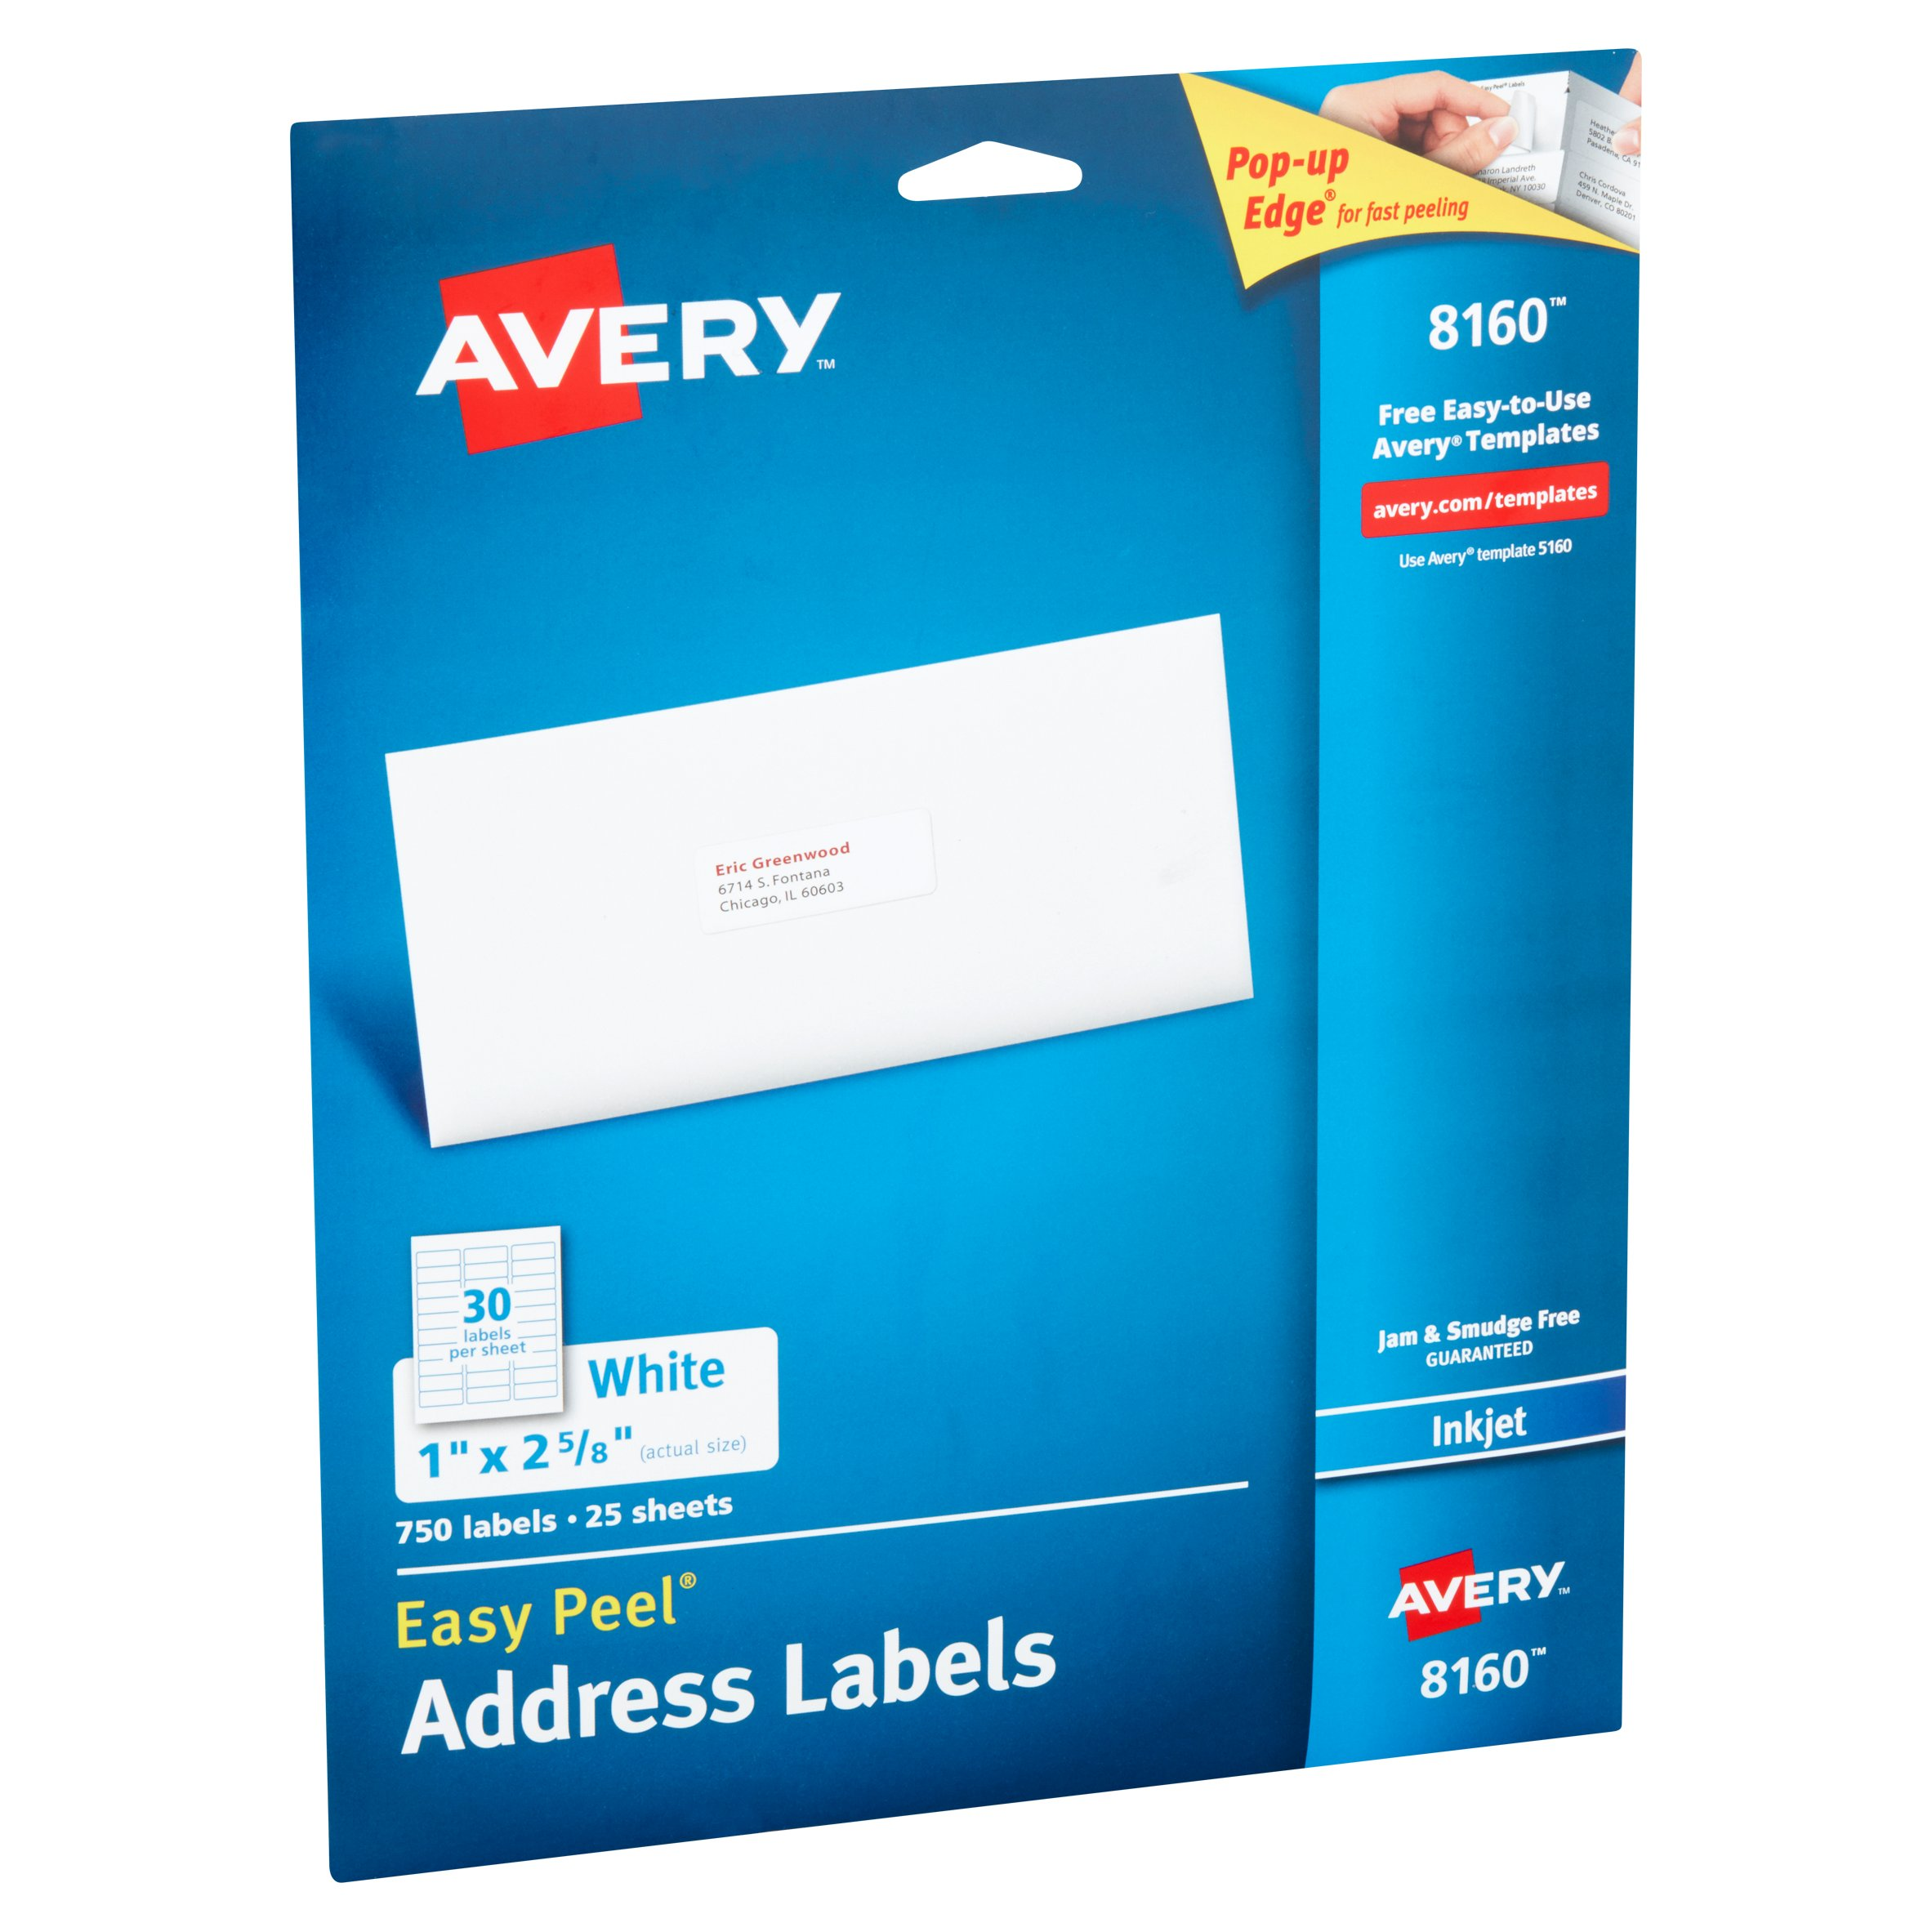 avery 8160 easy peel white inkjet address labels 750 count